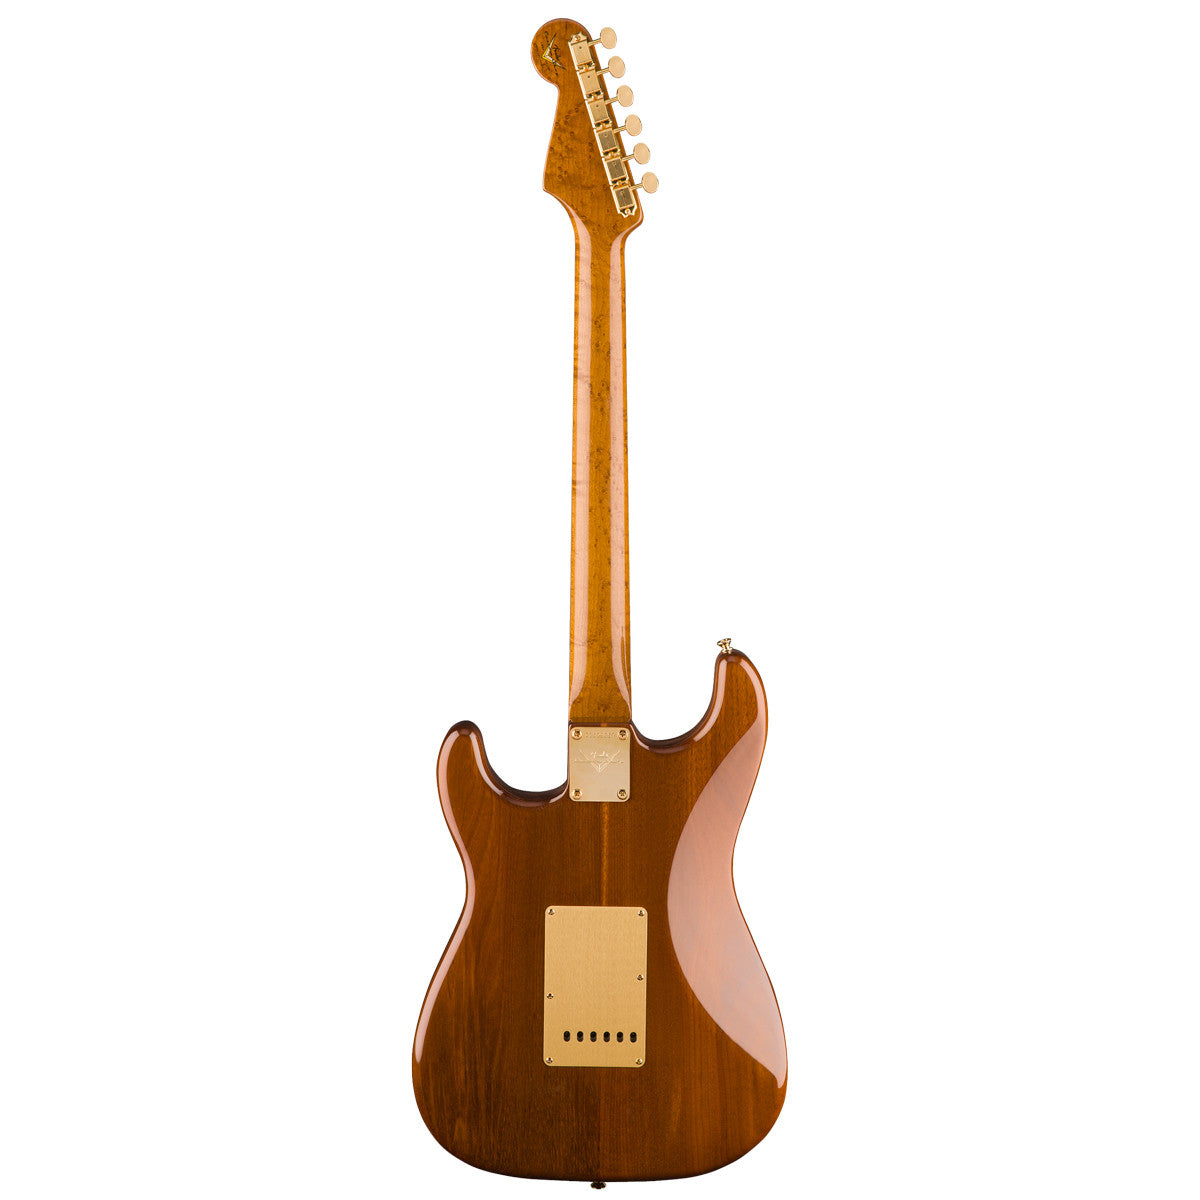 Fender Custom Shop - Artisan Stratocaster - Roasted Butternut, Claro Walnut Top - Vintage Guitar Boutique